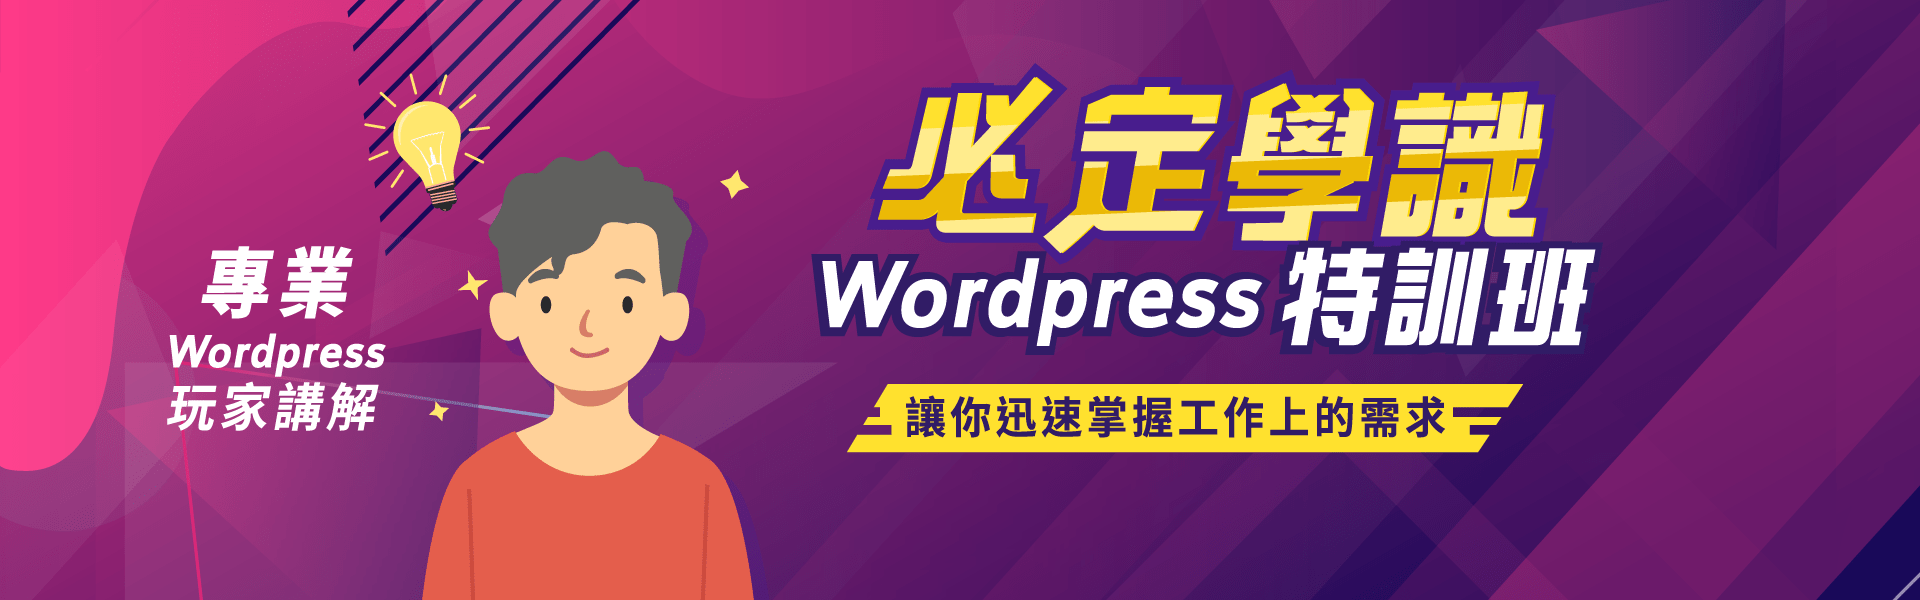 Wordress 教學